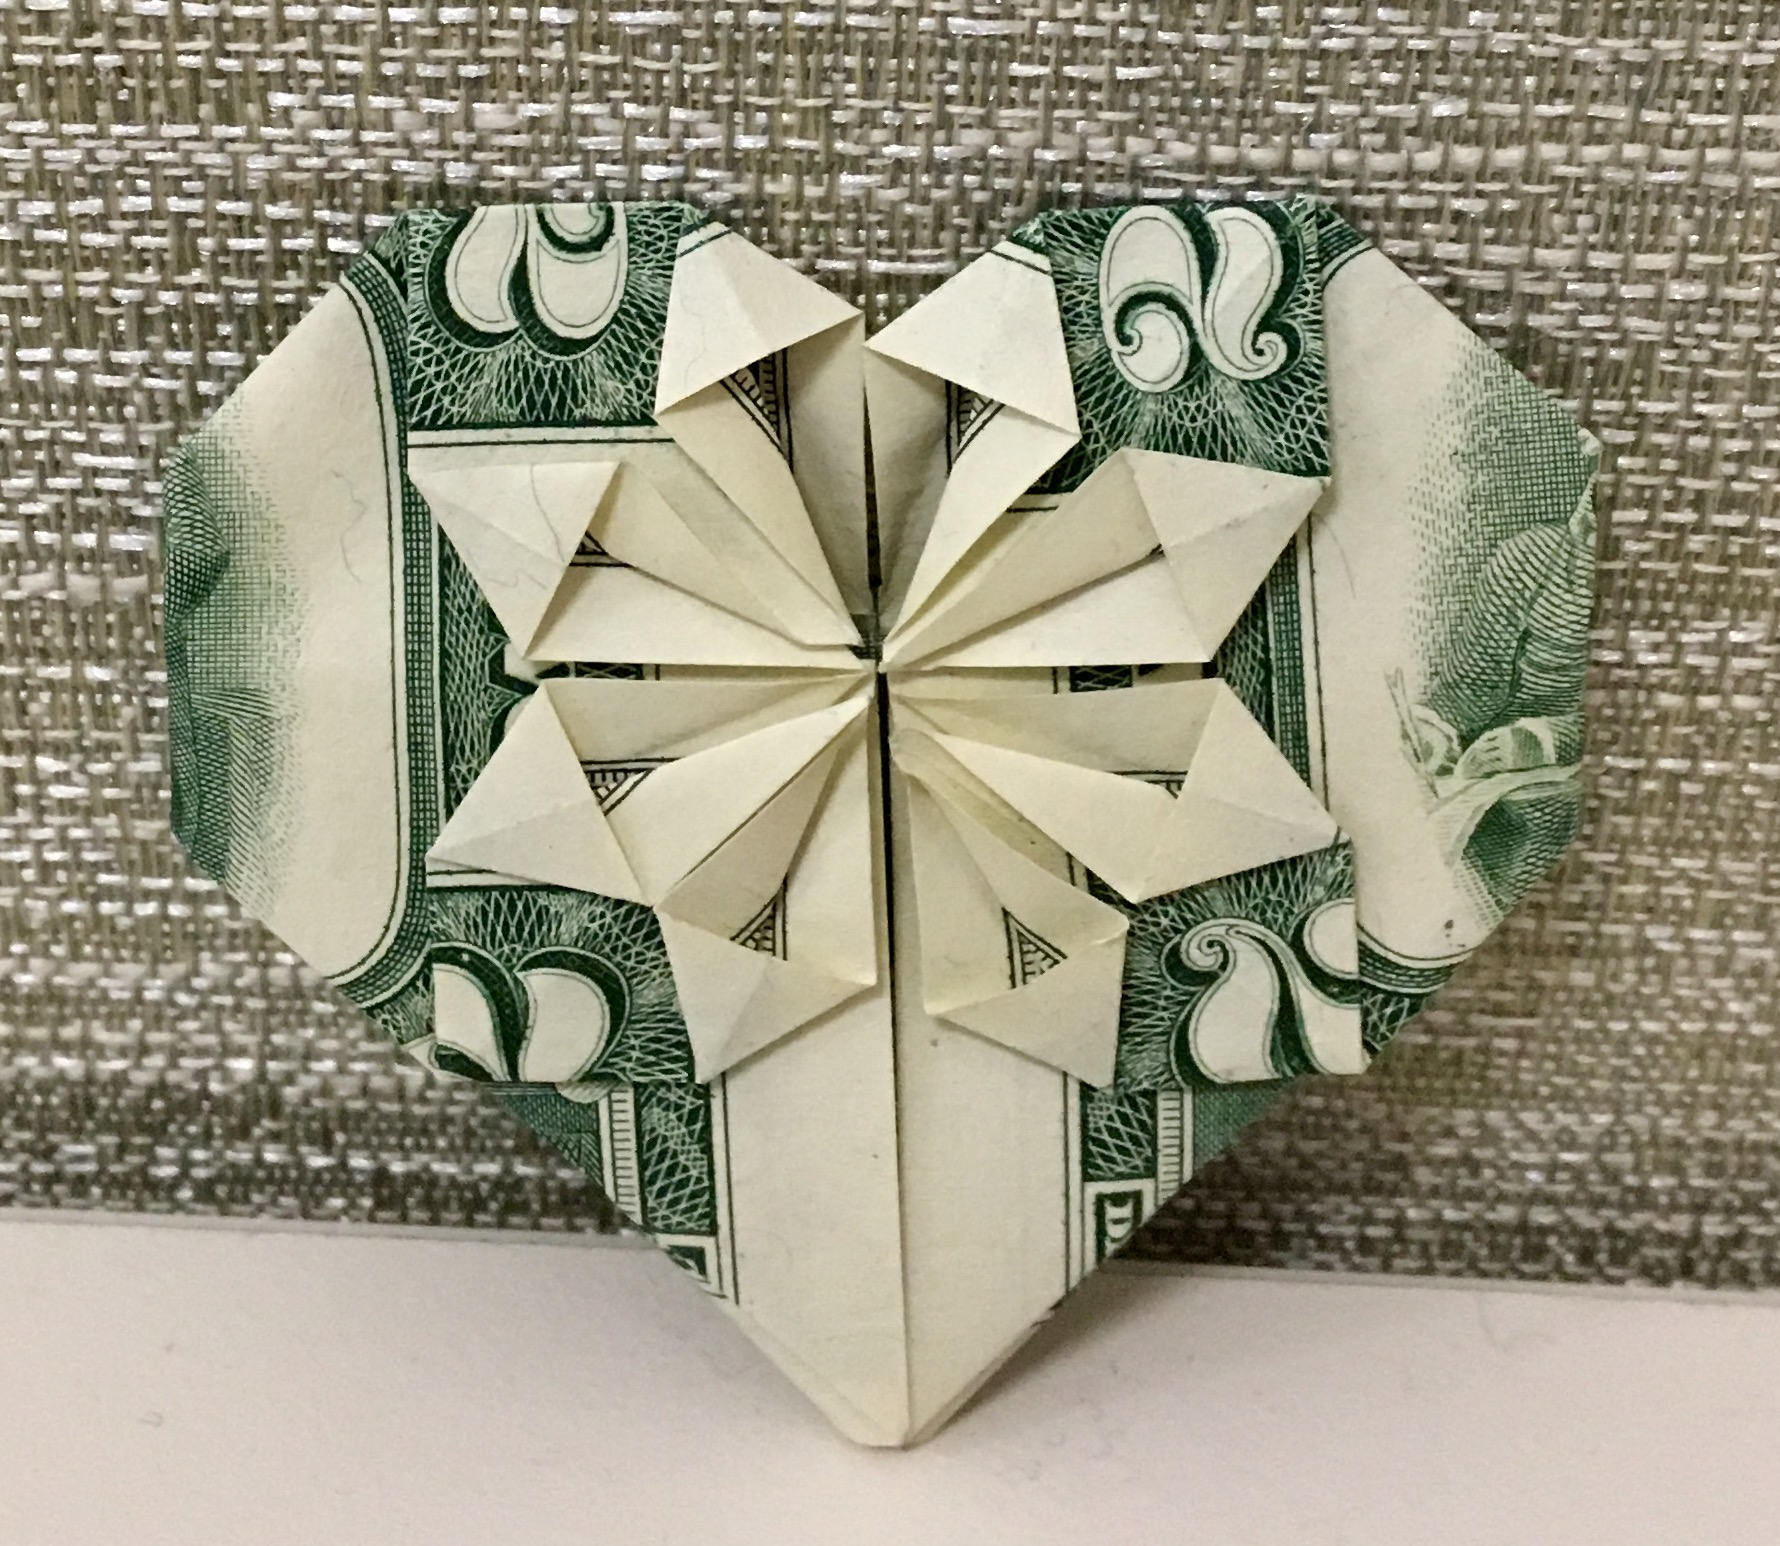 Shirt And Tie Money Origami Money Heart Or Money Shirt With Tie Origami Your Choice Of One Dollar Or Two Dollar Bill